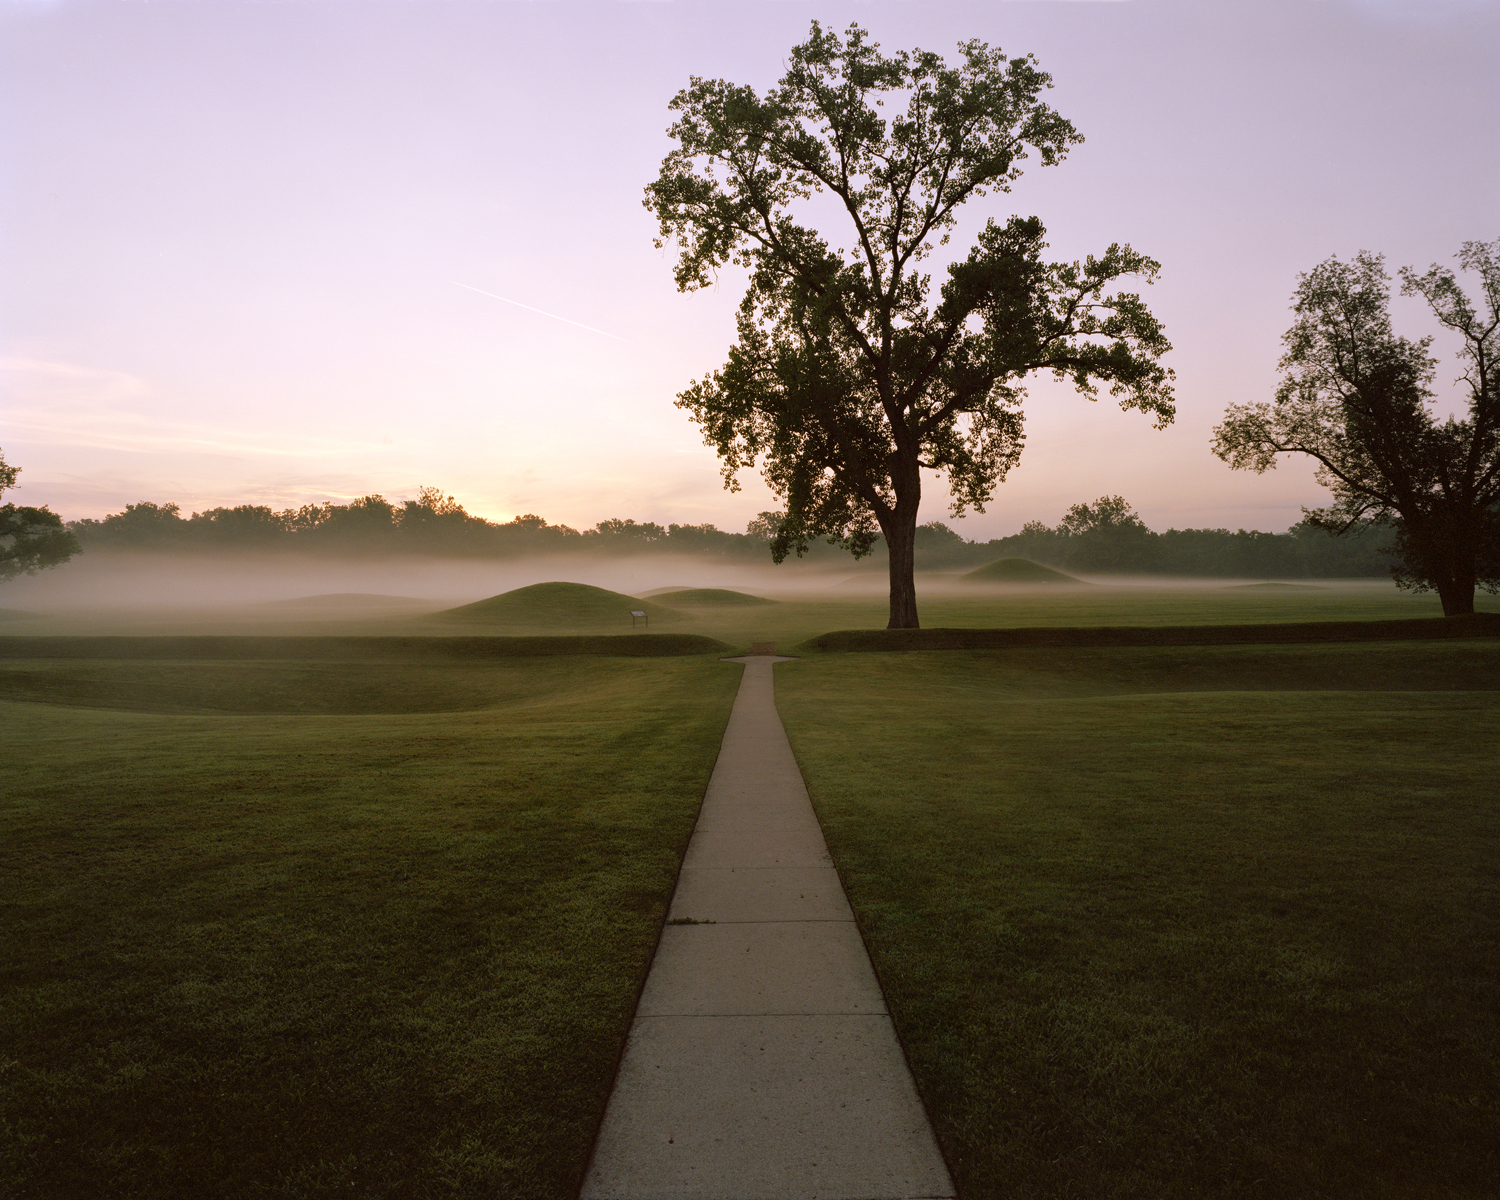 Sunrise-Hopewell-Culture-National-Historical-Park-Chillicothee-OH.jpg